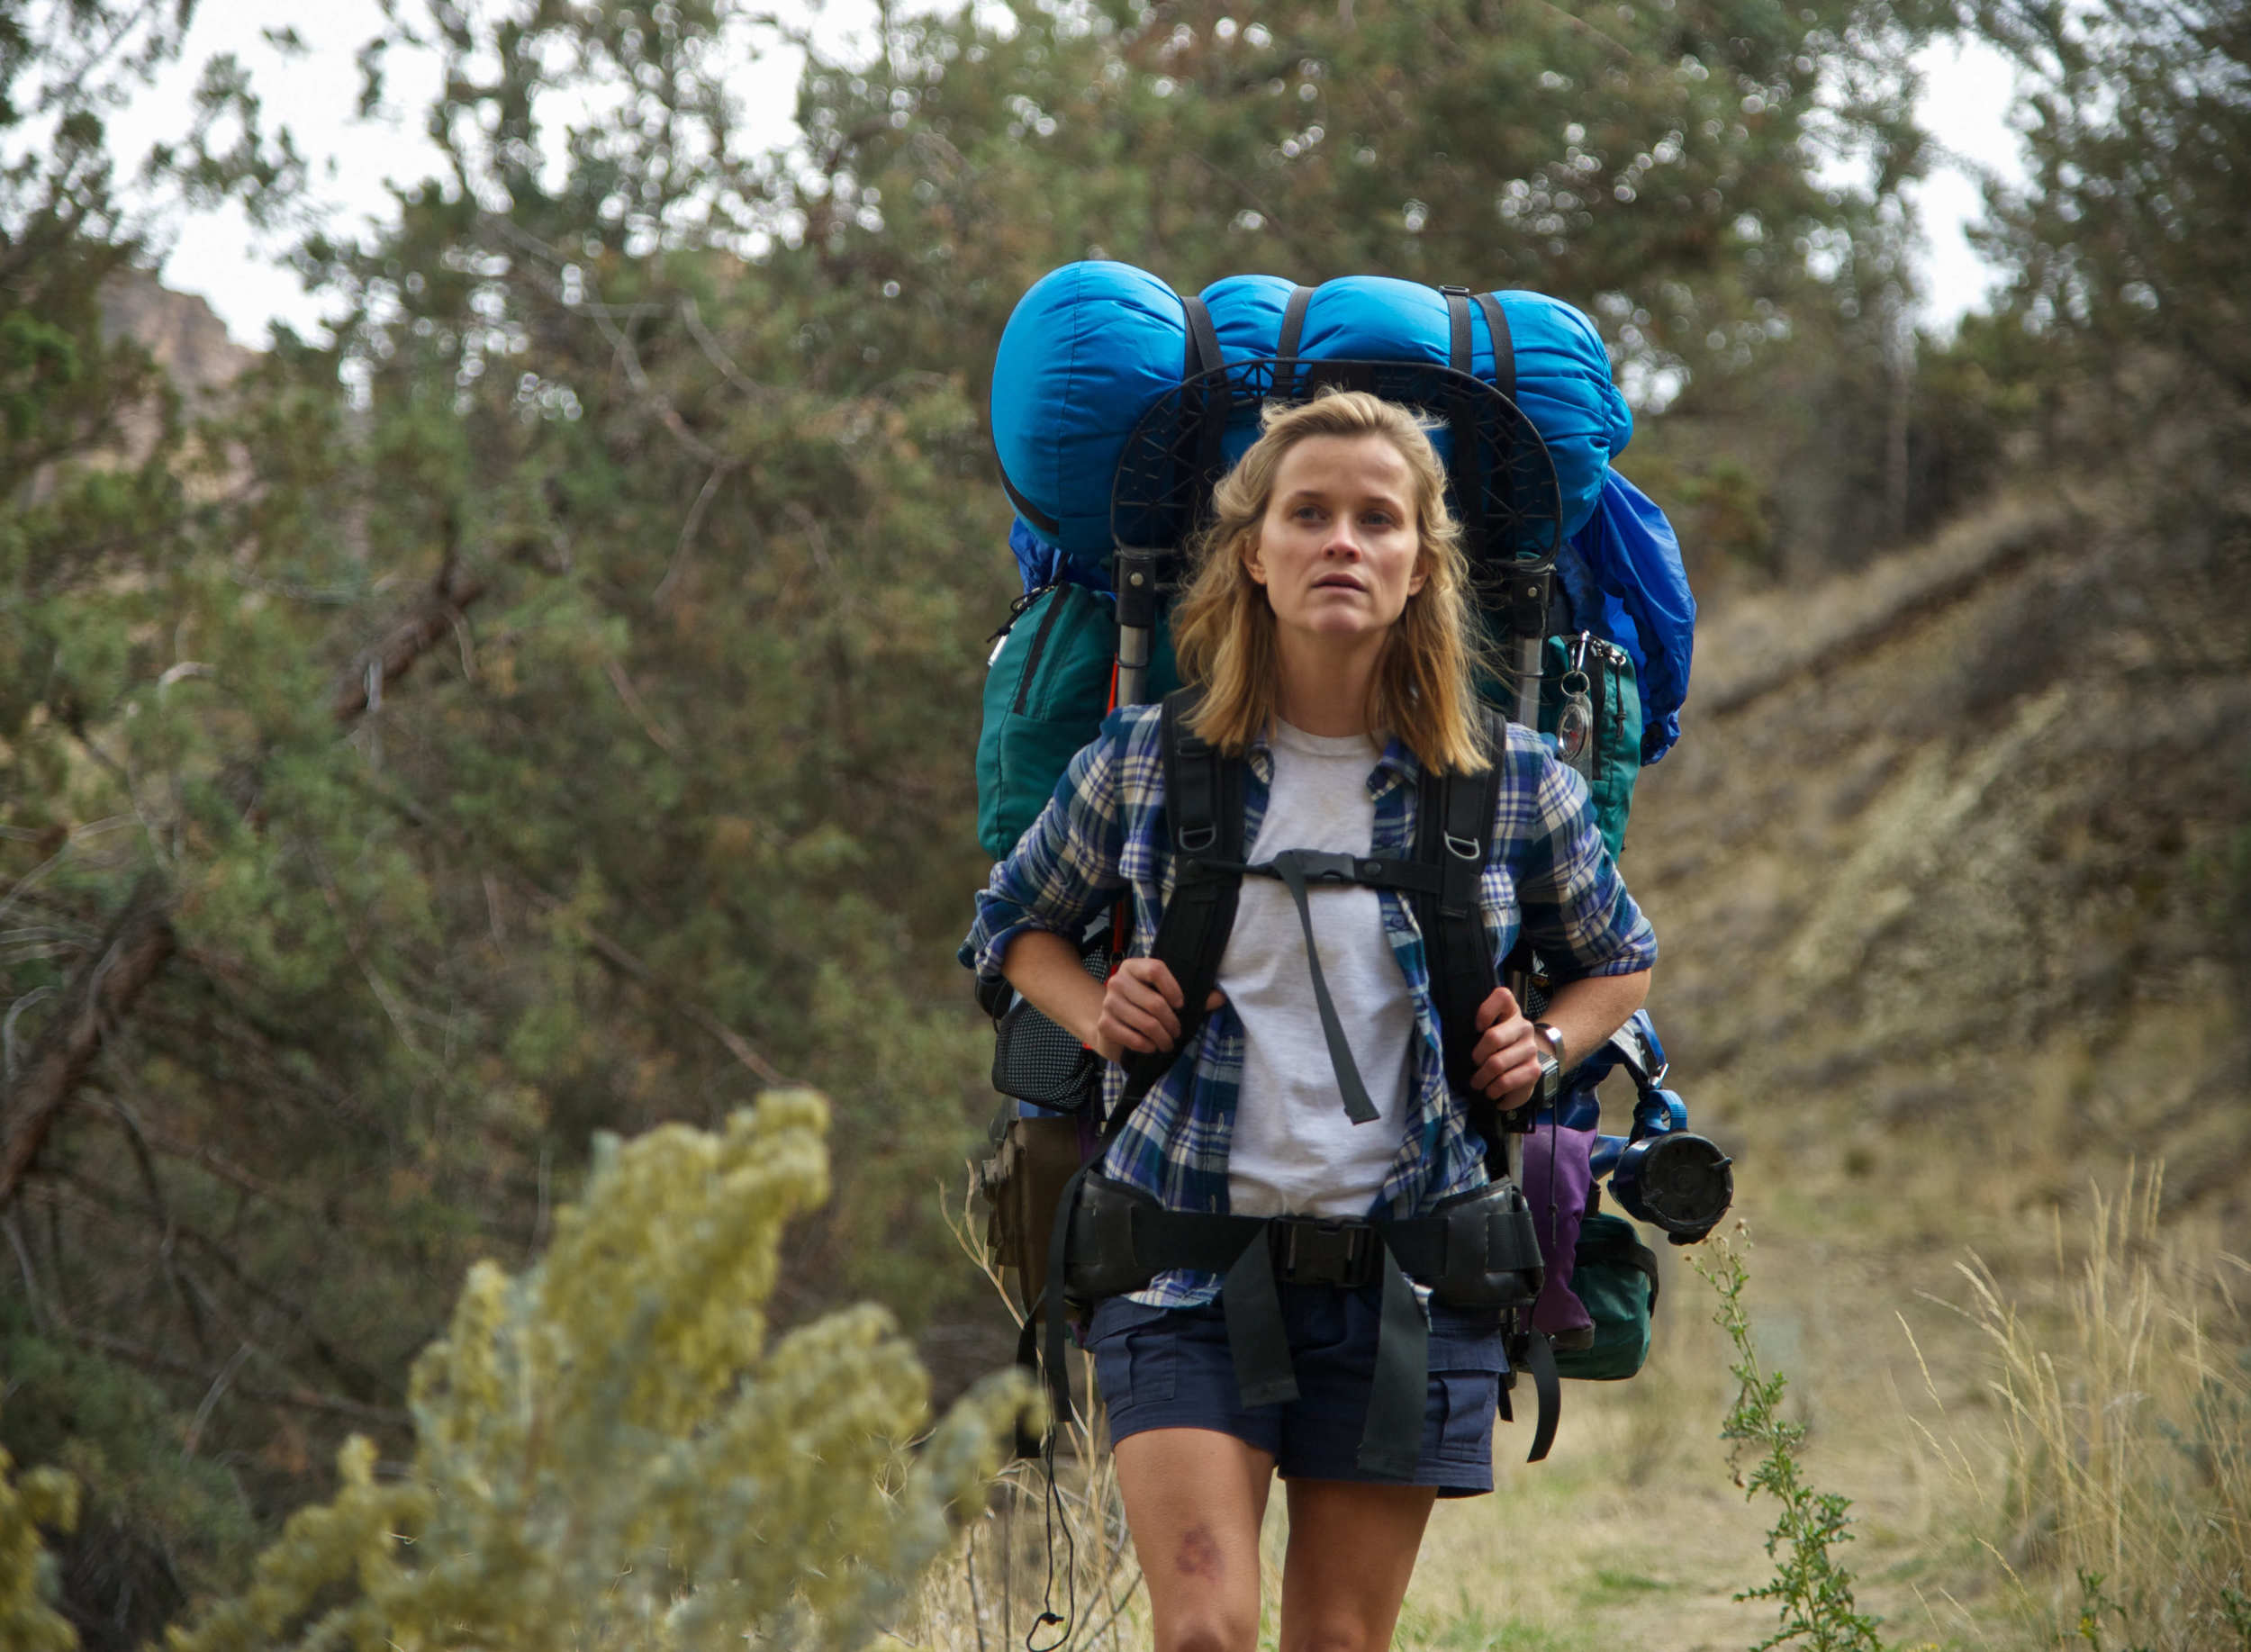 Still shot from ' Wild ', starring Reese Witherspoon, 2014